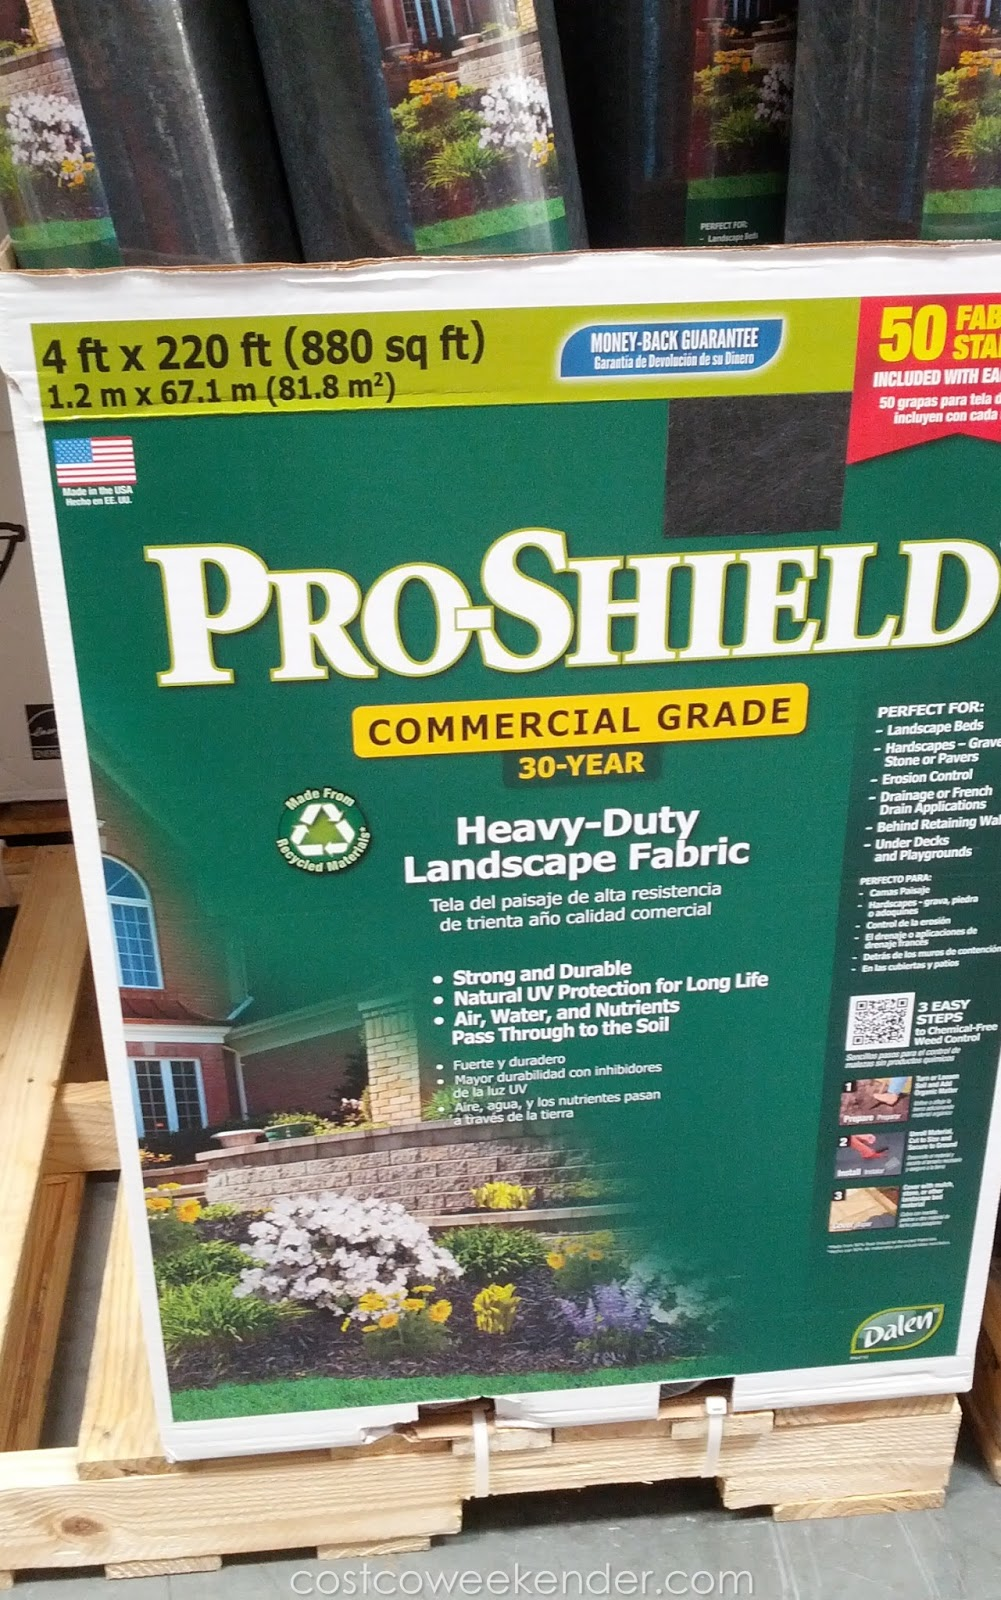 dalen pro shield heavy duty landscape fabric costco weekender